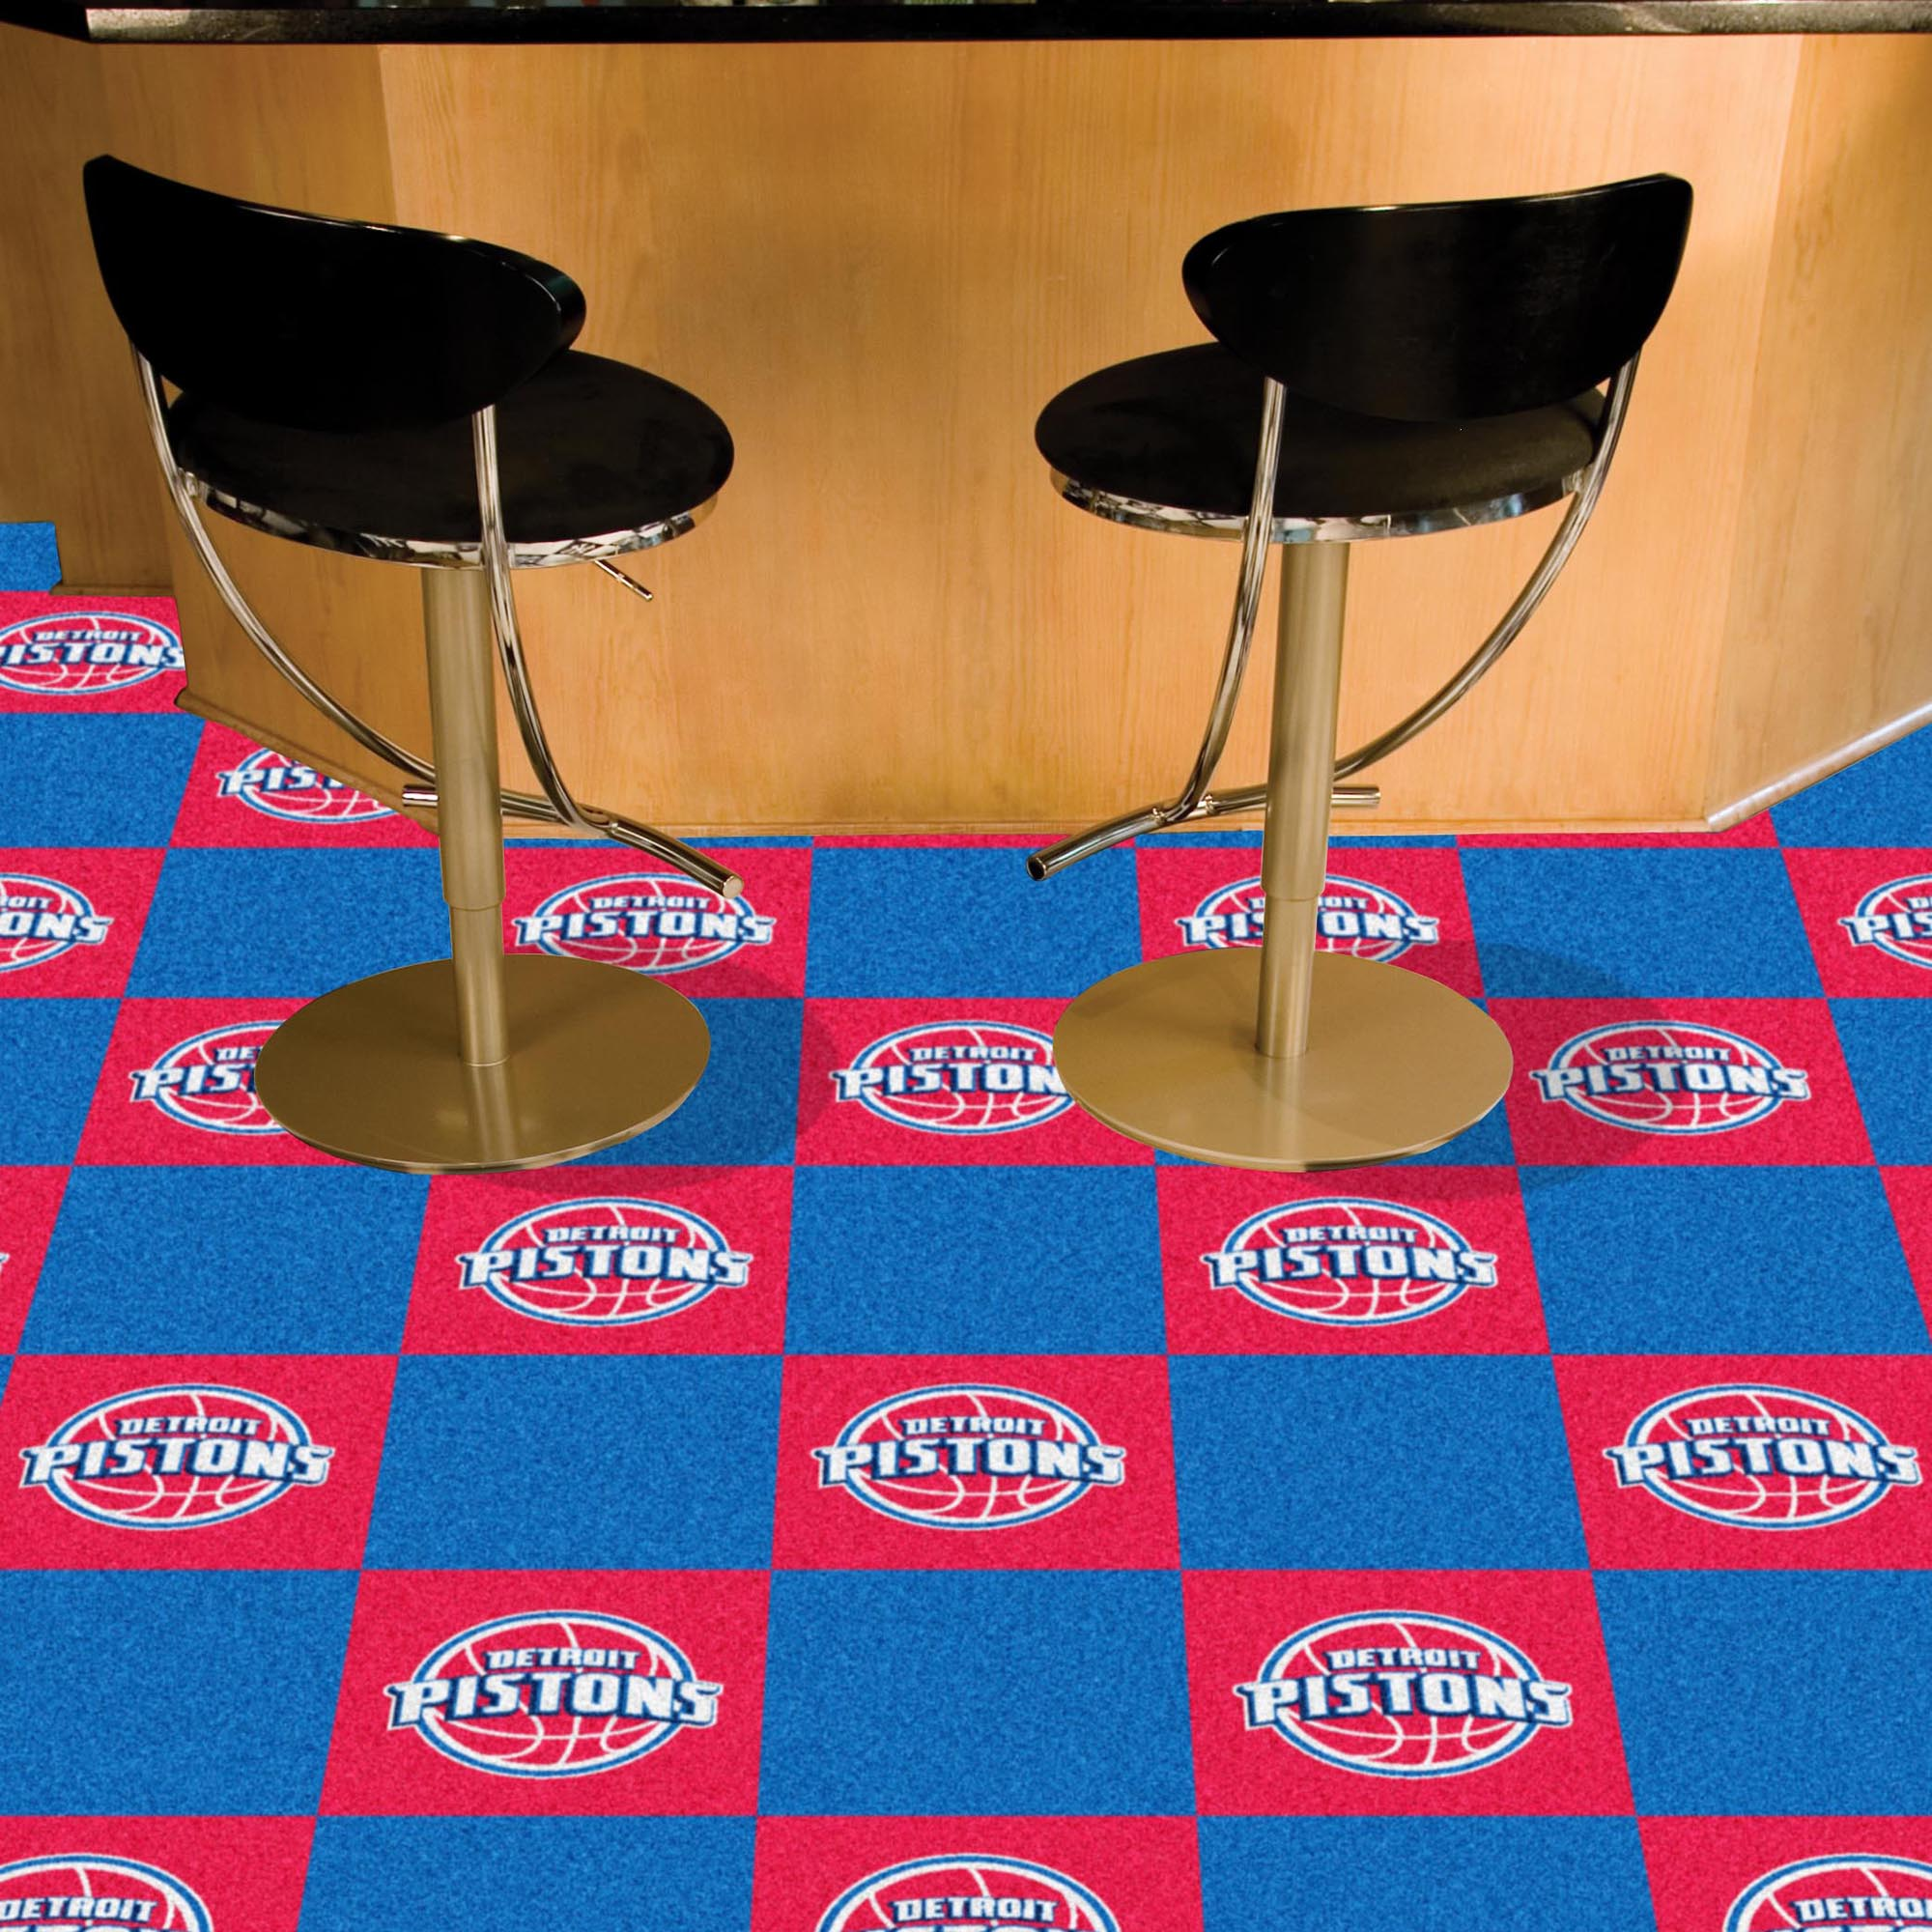 Detroit Pistons Carpet Tiles 18x18 in.